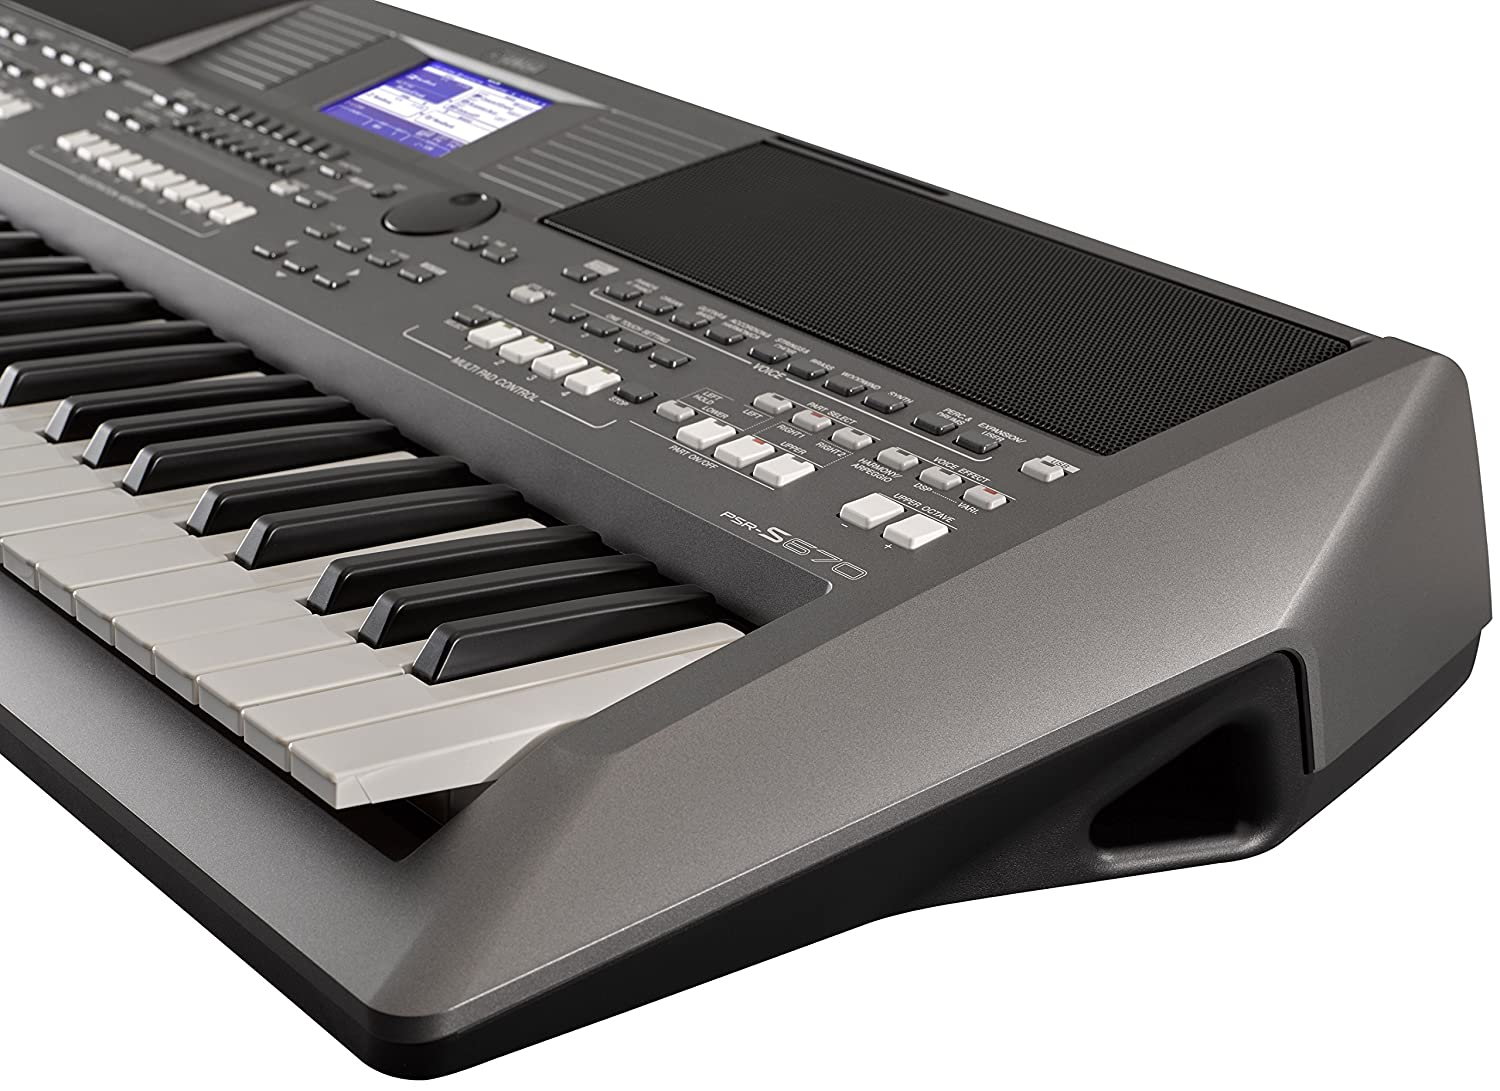 ... Keyboard with Onboard Stereo Speakers and MegaVoice Articulation Technology with Keyboard Stand, Sustain Pedal and Headphones: Musical Instruments